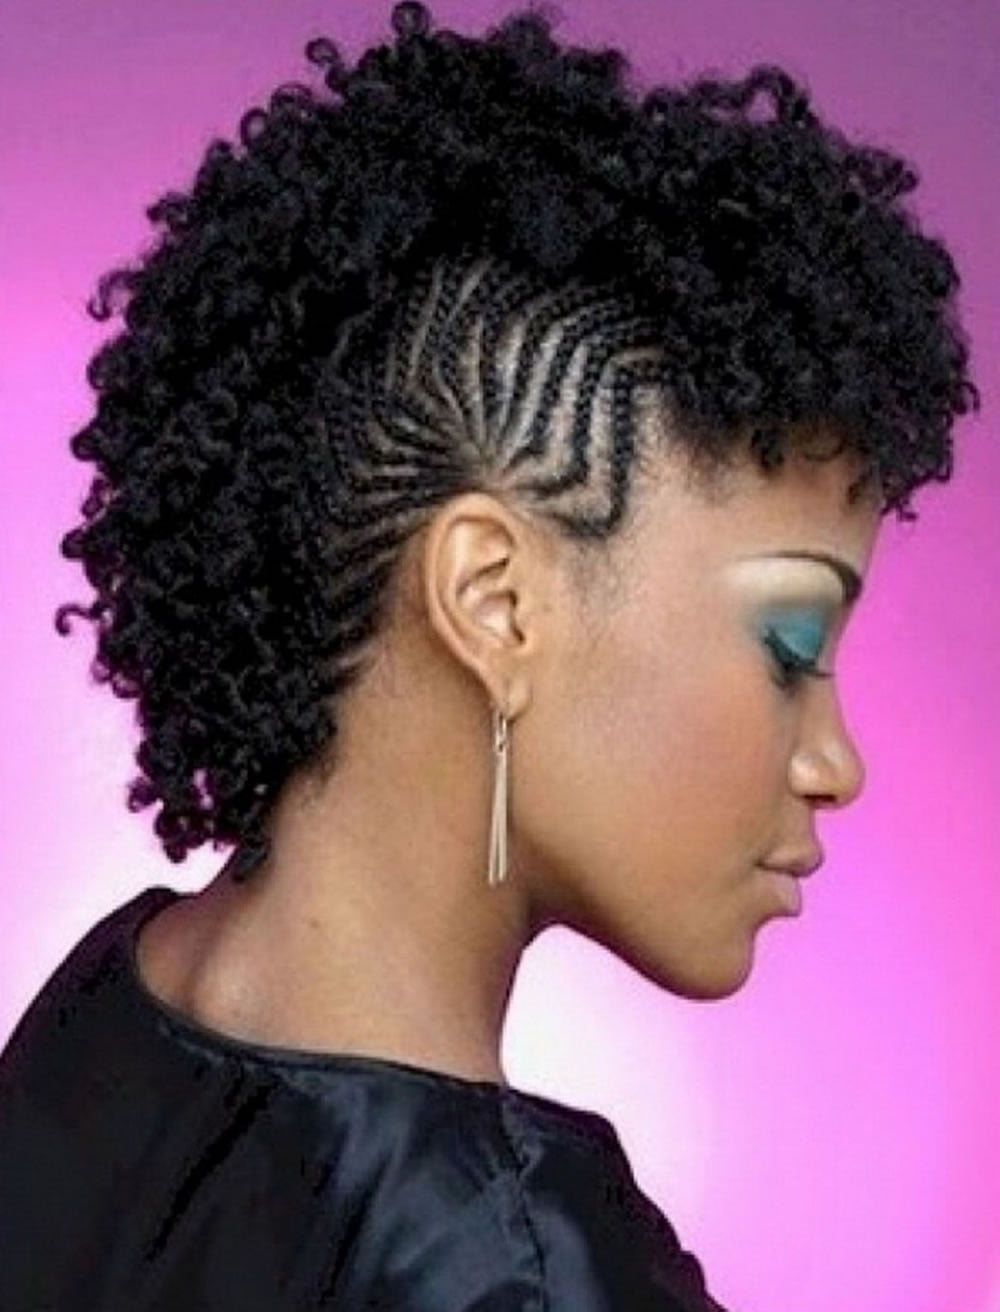 ethnic-natural-hairstyles-for-black-women-wife-amateur-bj